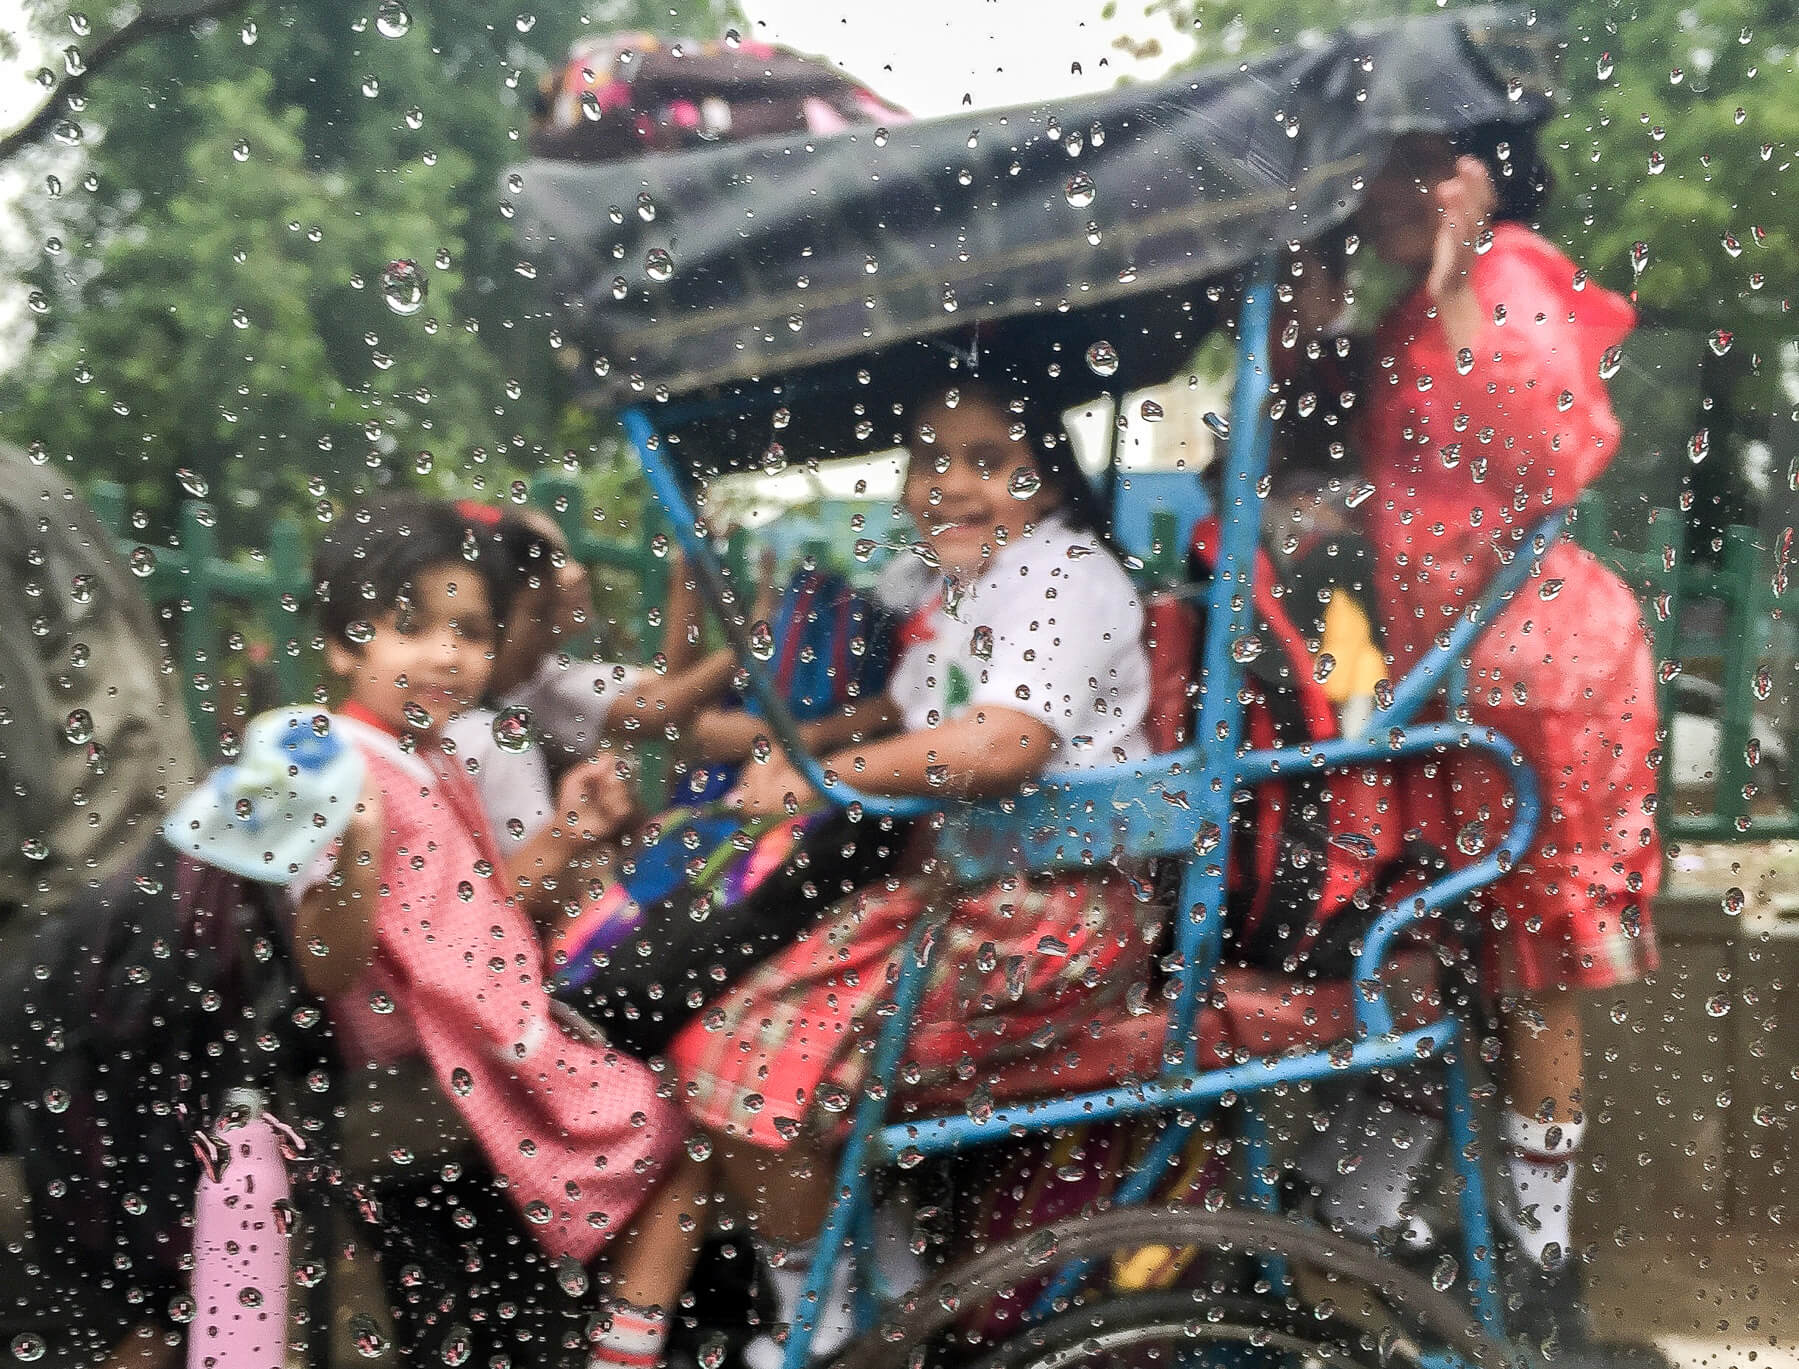 Rain on window, looking at Indian Girls on a Rickshaw